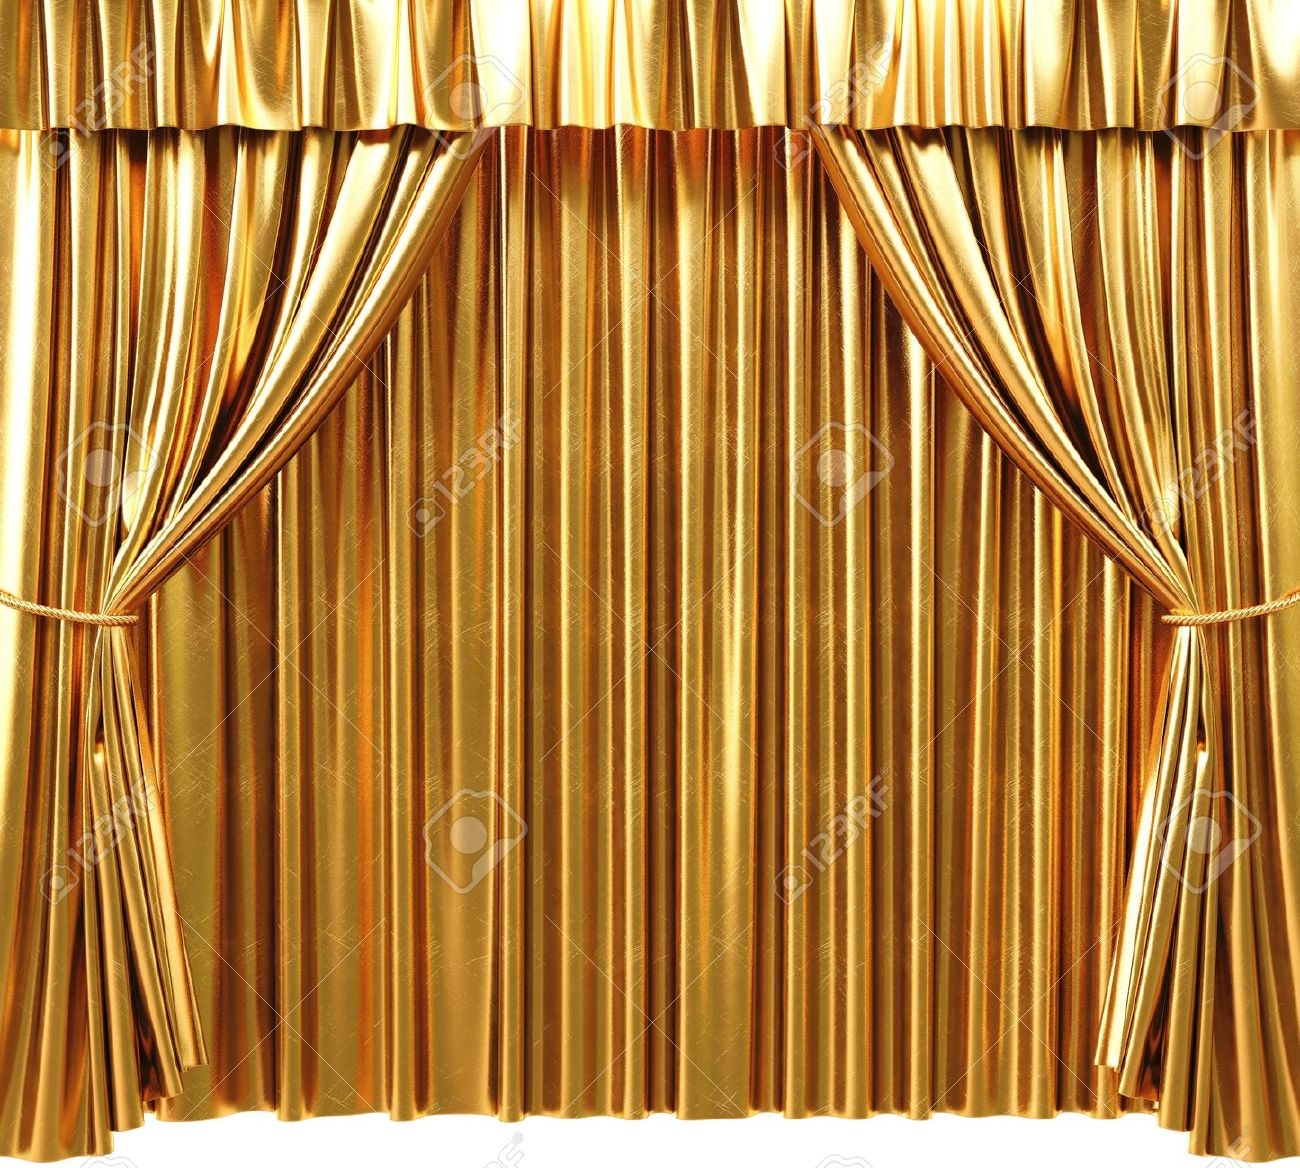 Golden Theatrical Curtain Gold Curtains Background